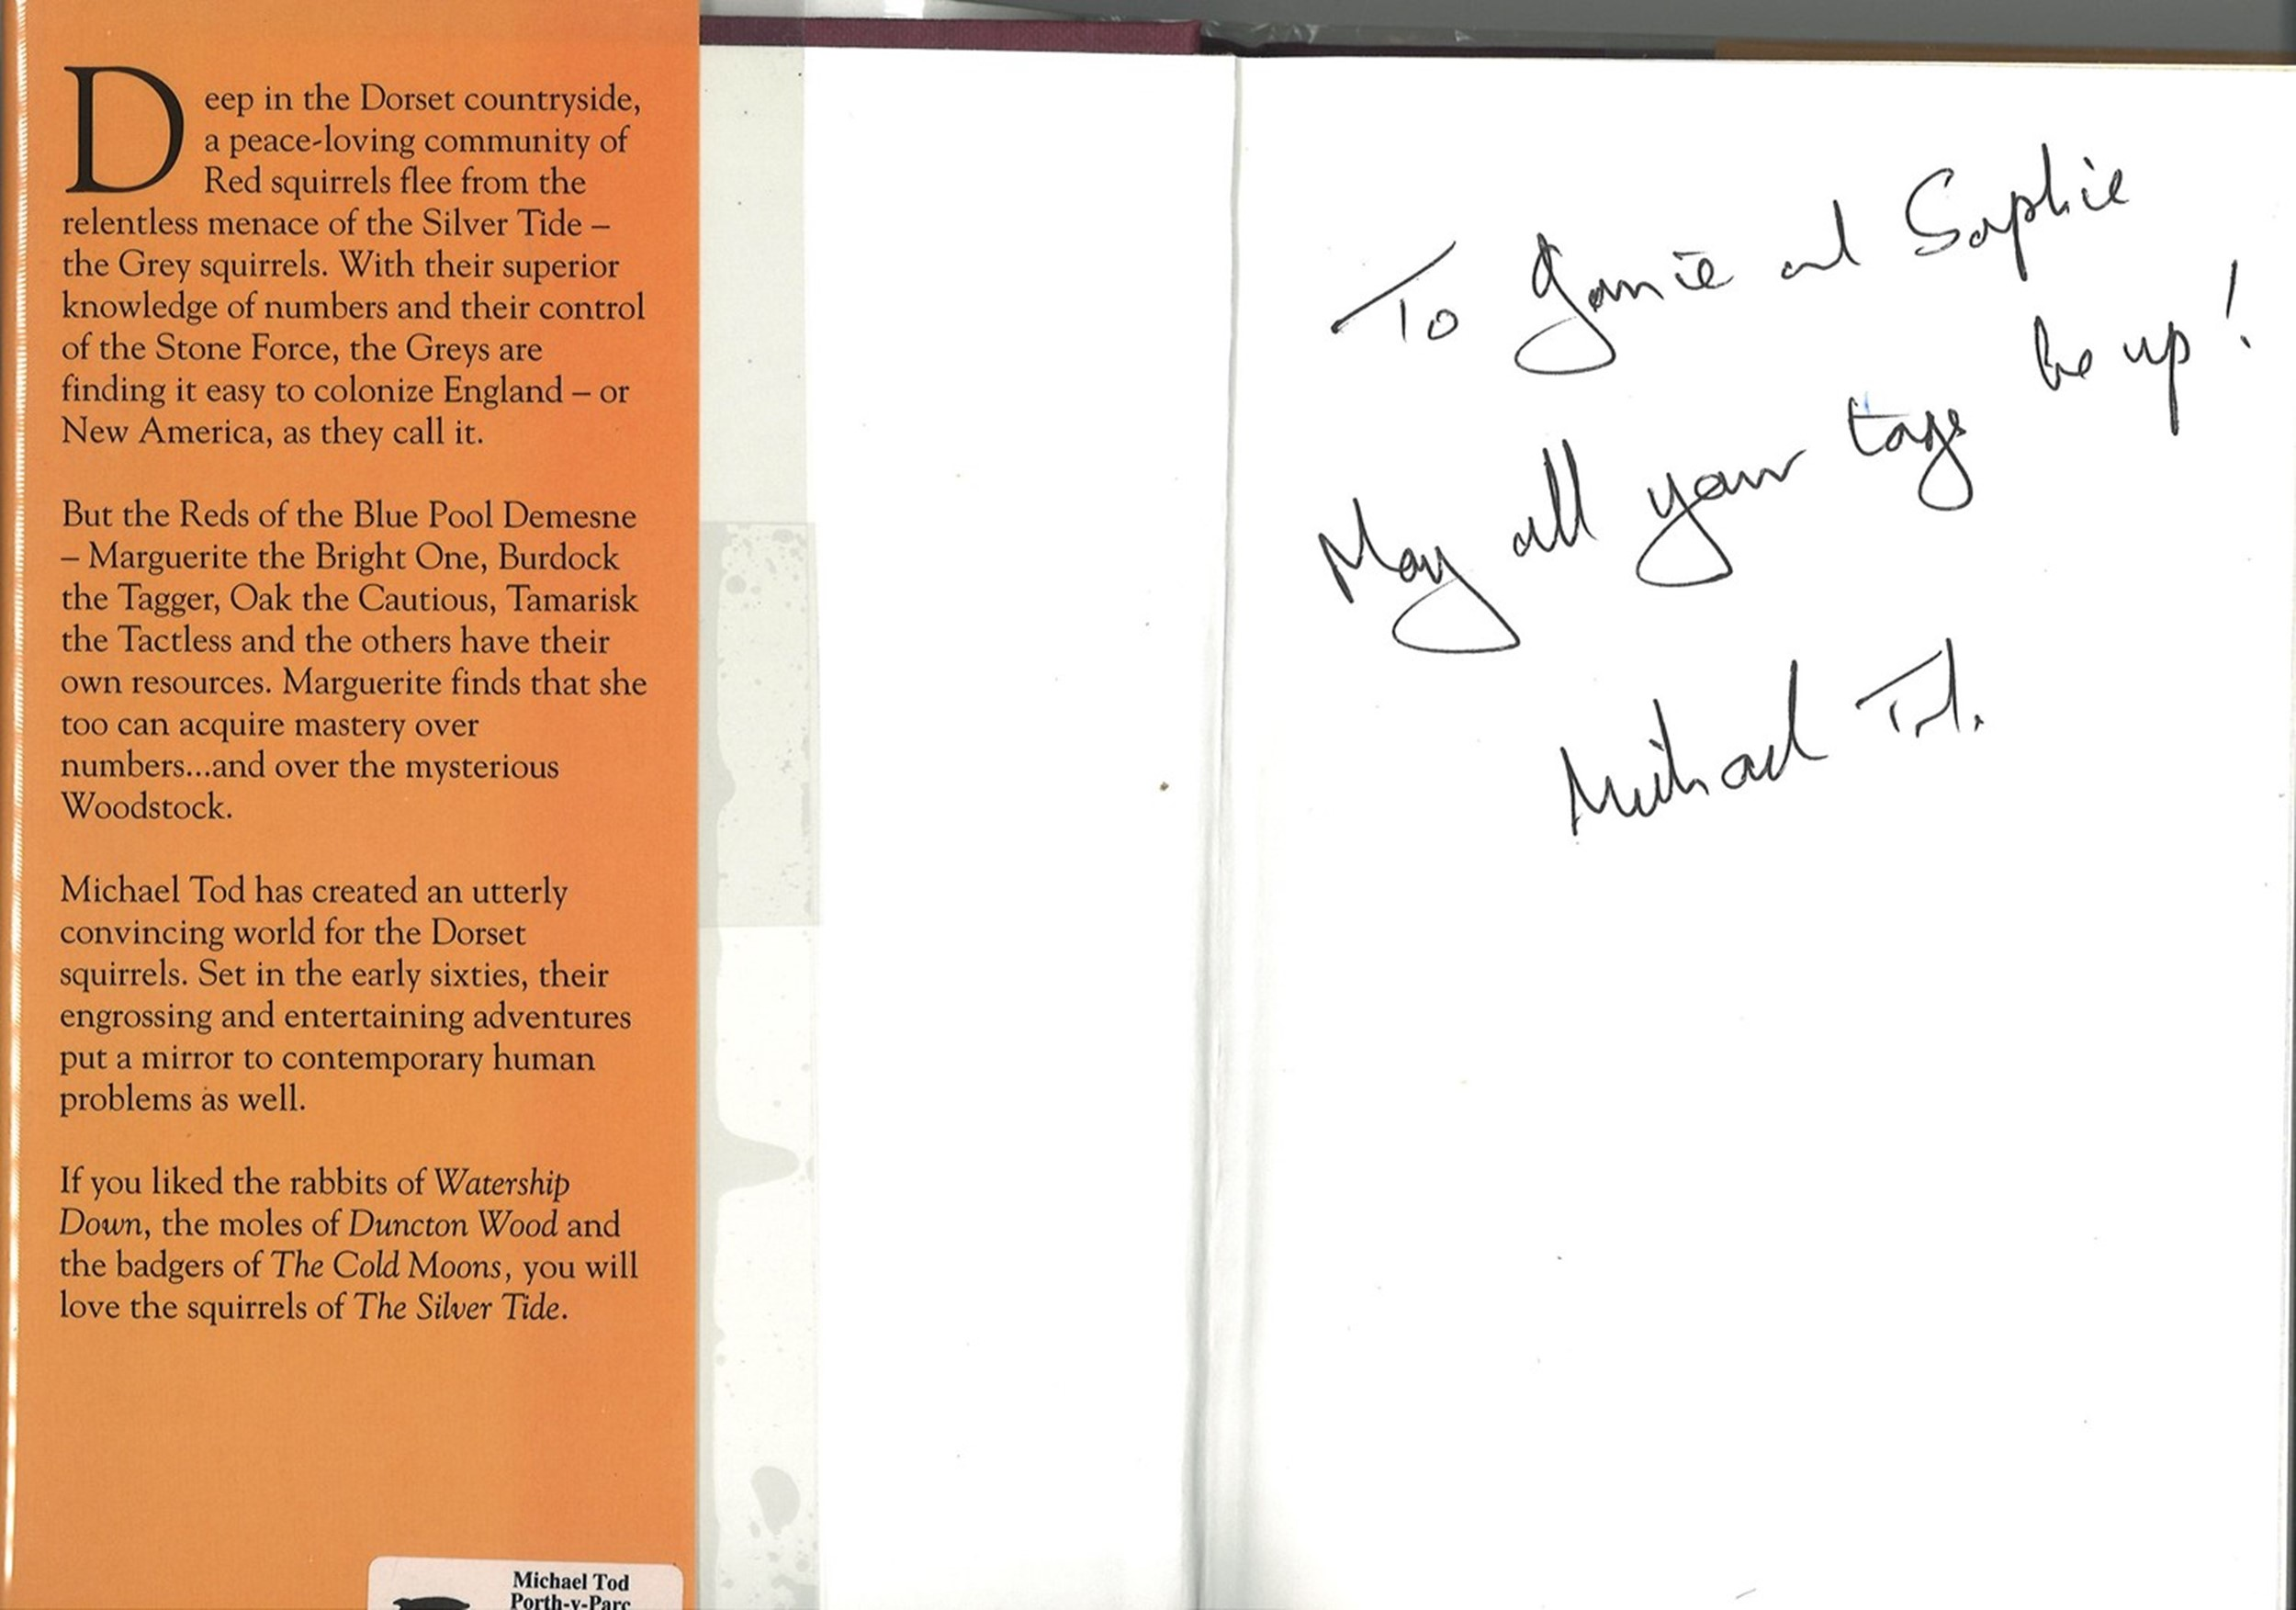 5 Signed Books 3 Paperback and 2 Hardback Books, Three Hours, Silver Tide, Light Weaver, Muddy - Image 4 of 5